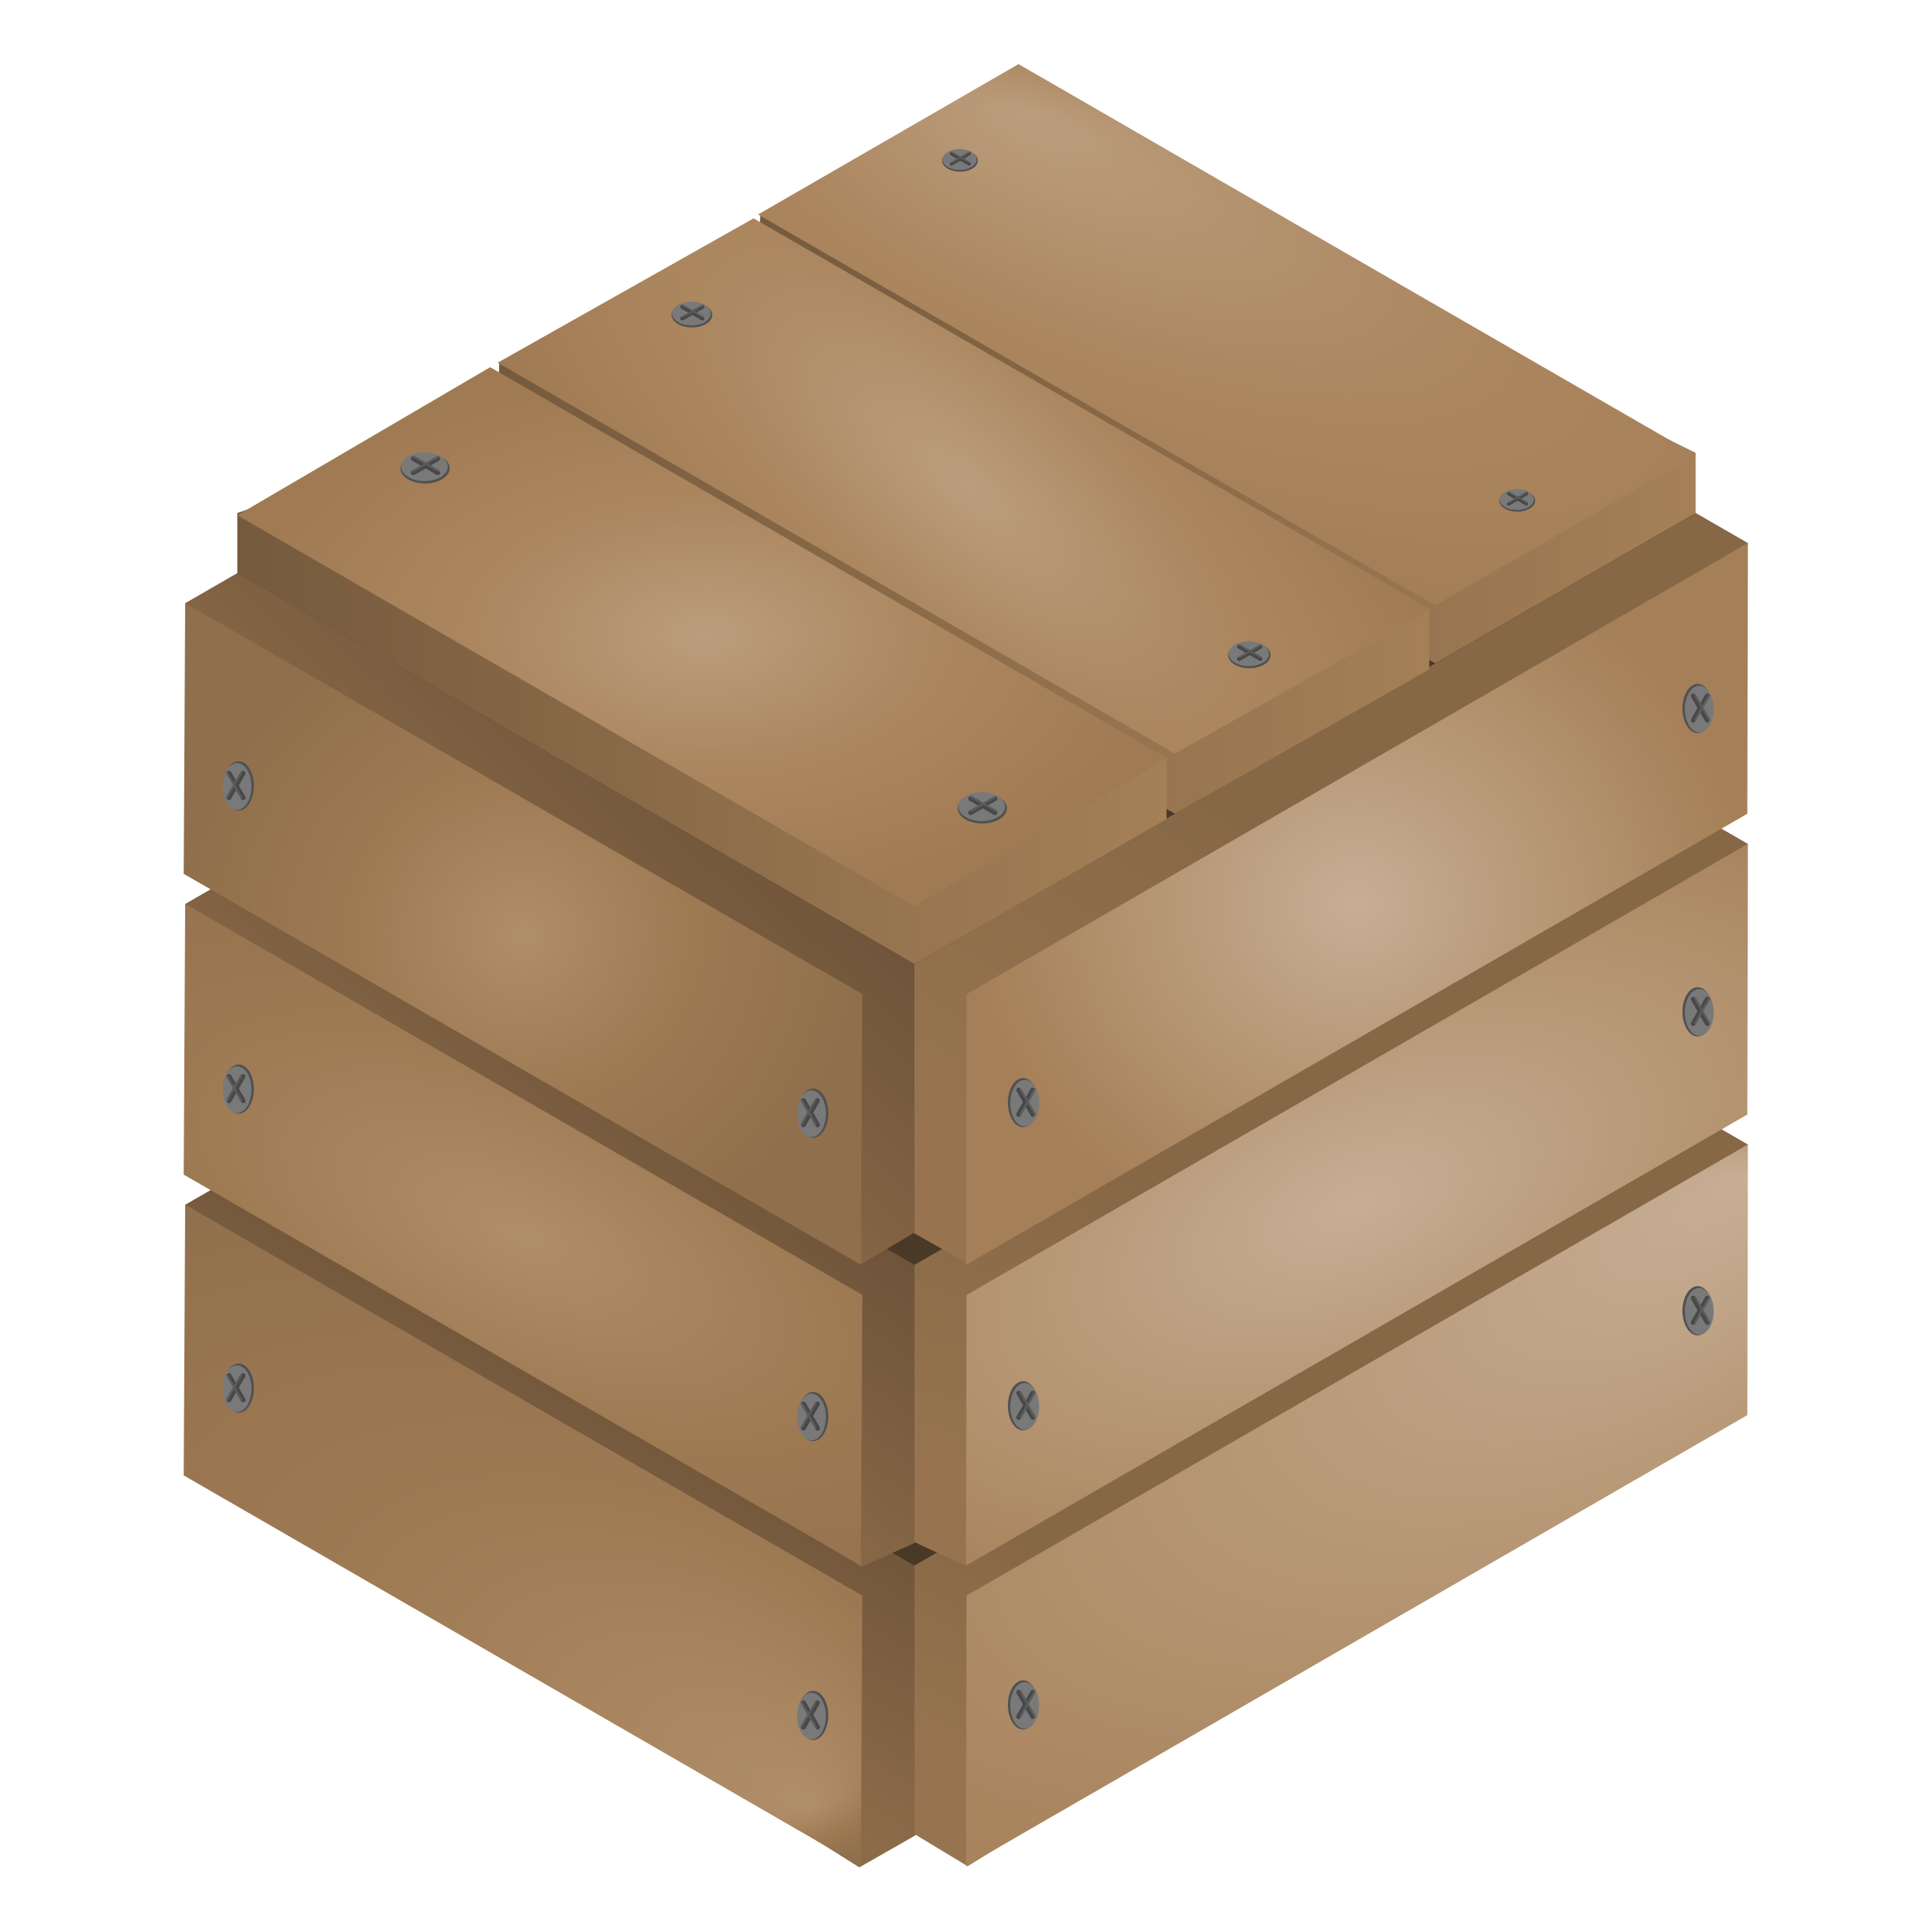 wooden box clipart. wood box wooden clipart